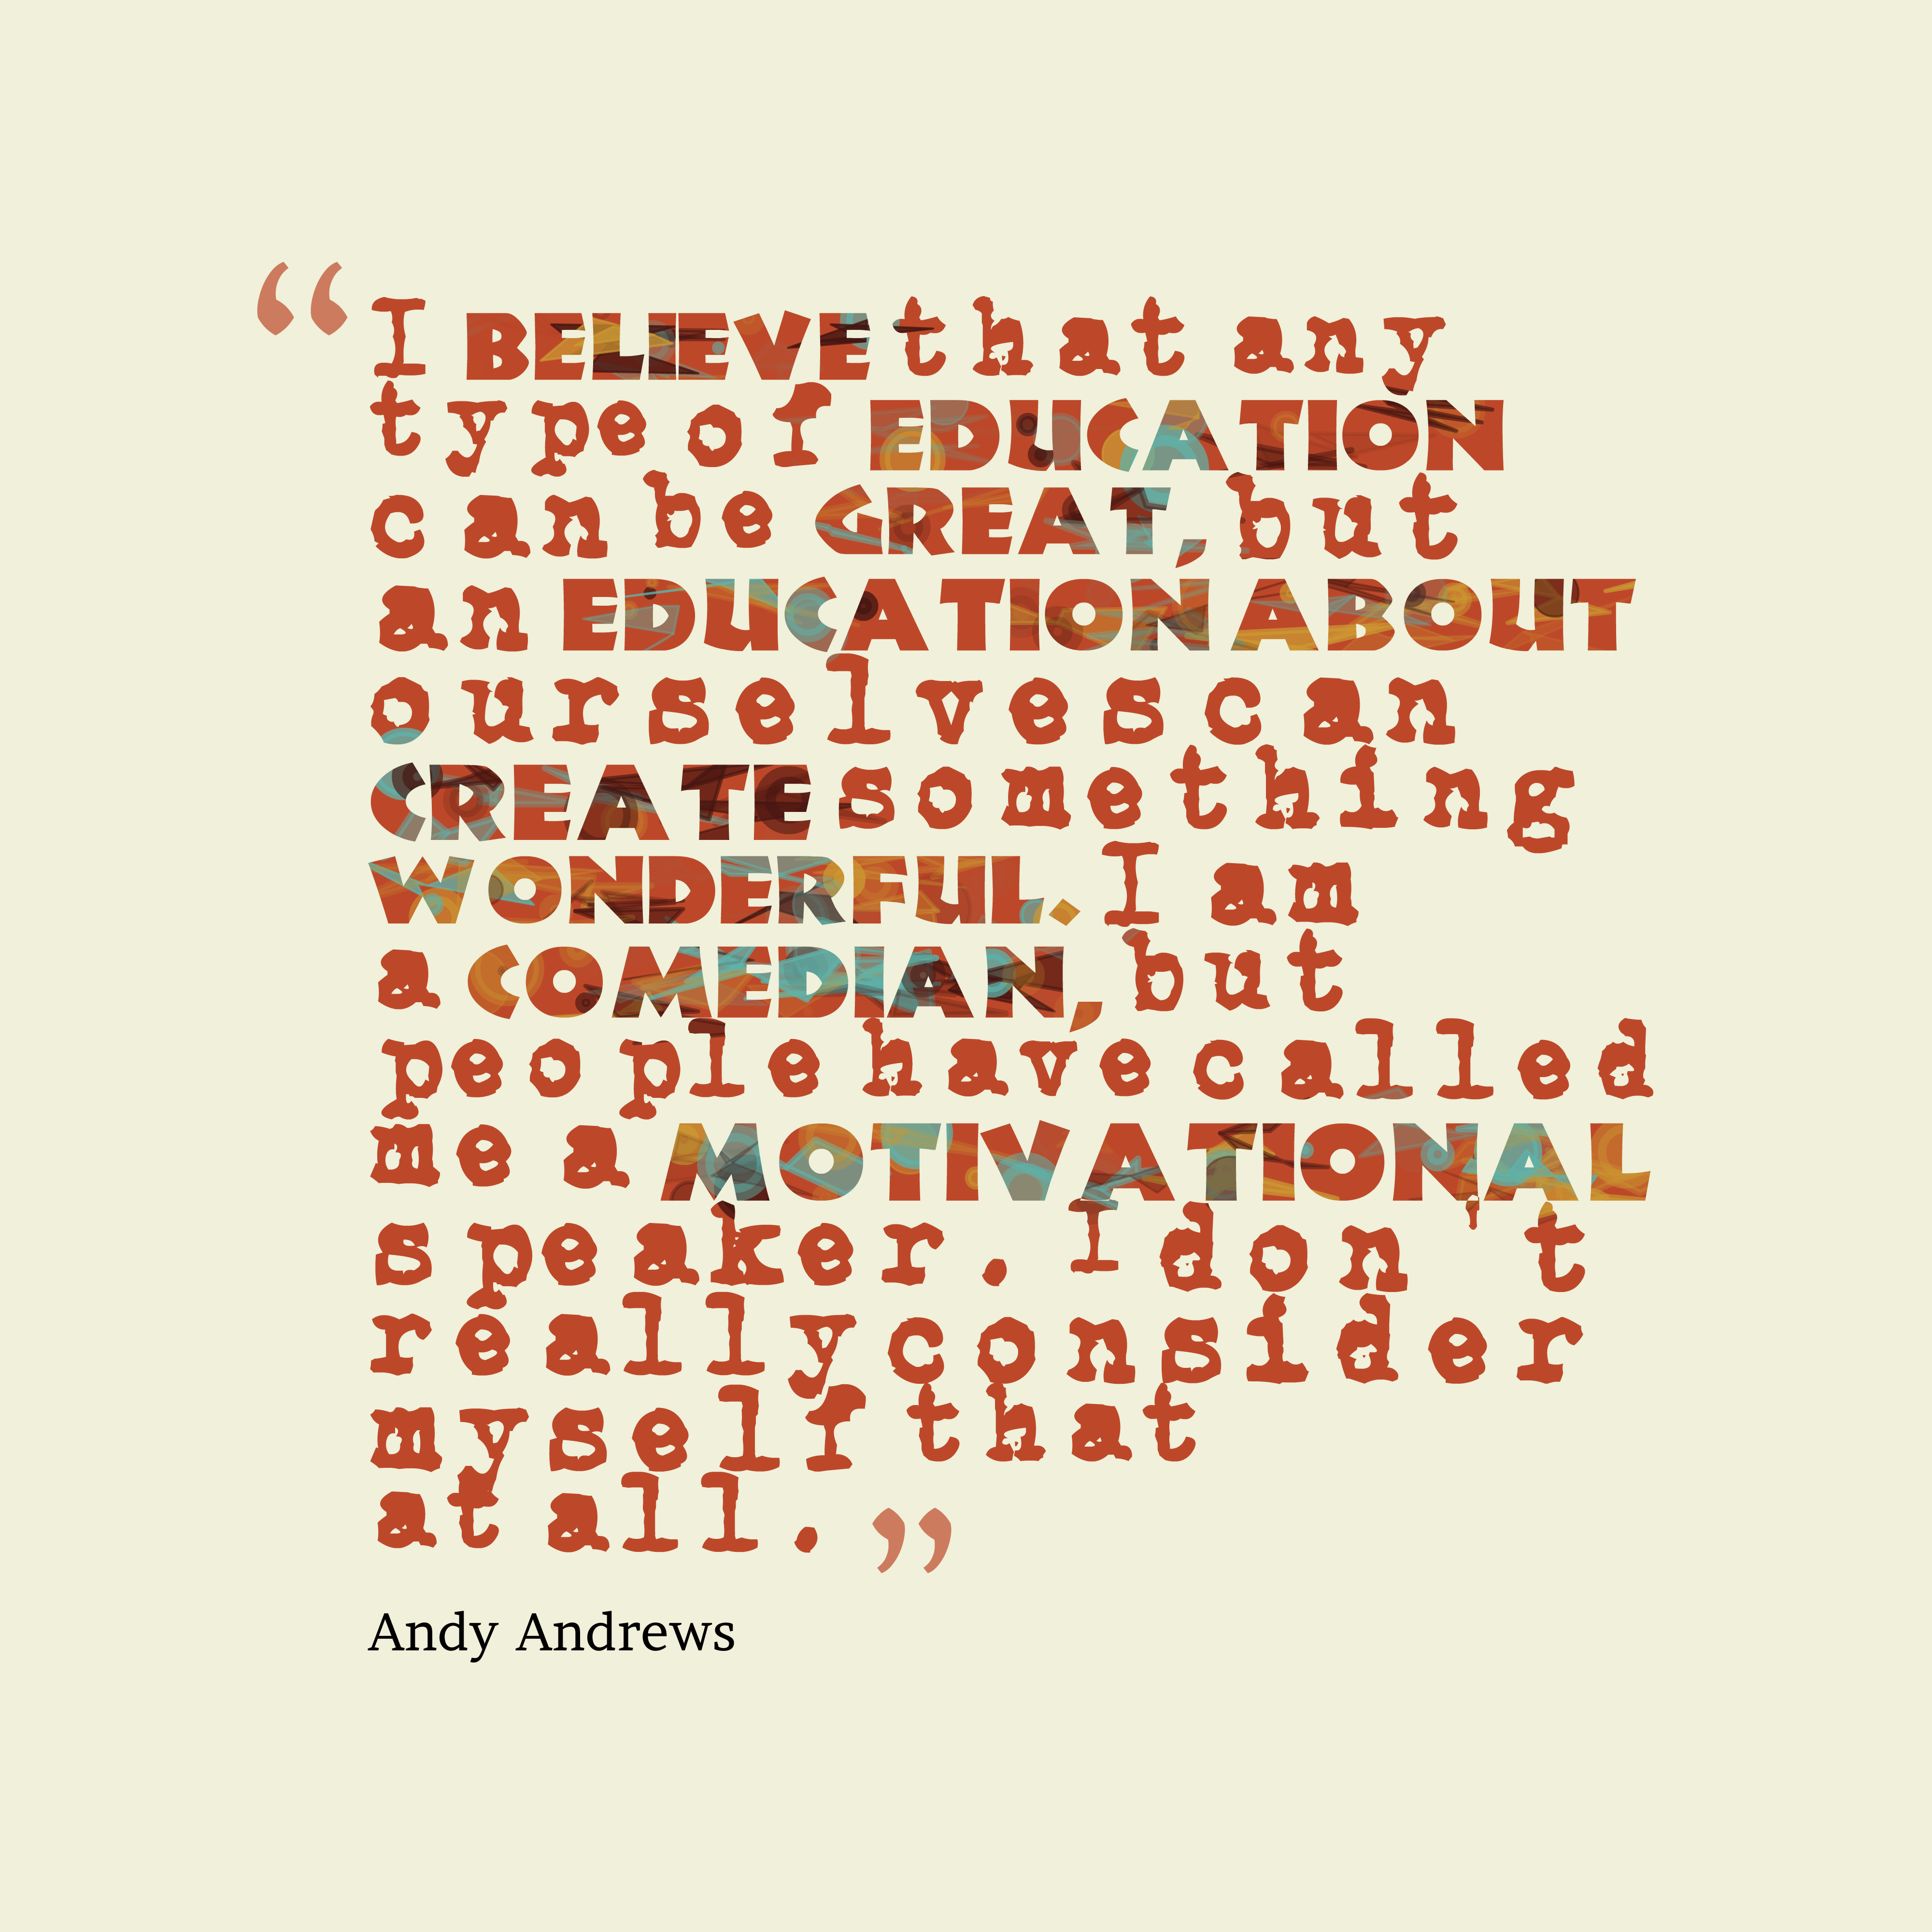 Quotes image of I believe that any type of education can be great, but an education about ourselves can create something wonderful. I am a comedian, but people have called me a motivational speaker. I don't really consider myself that at all.